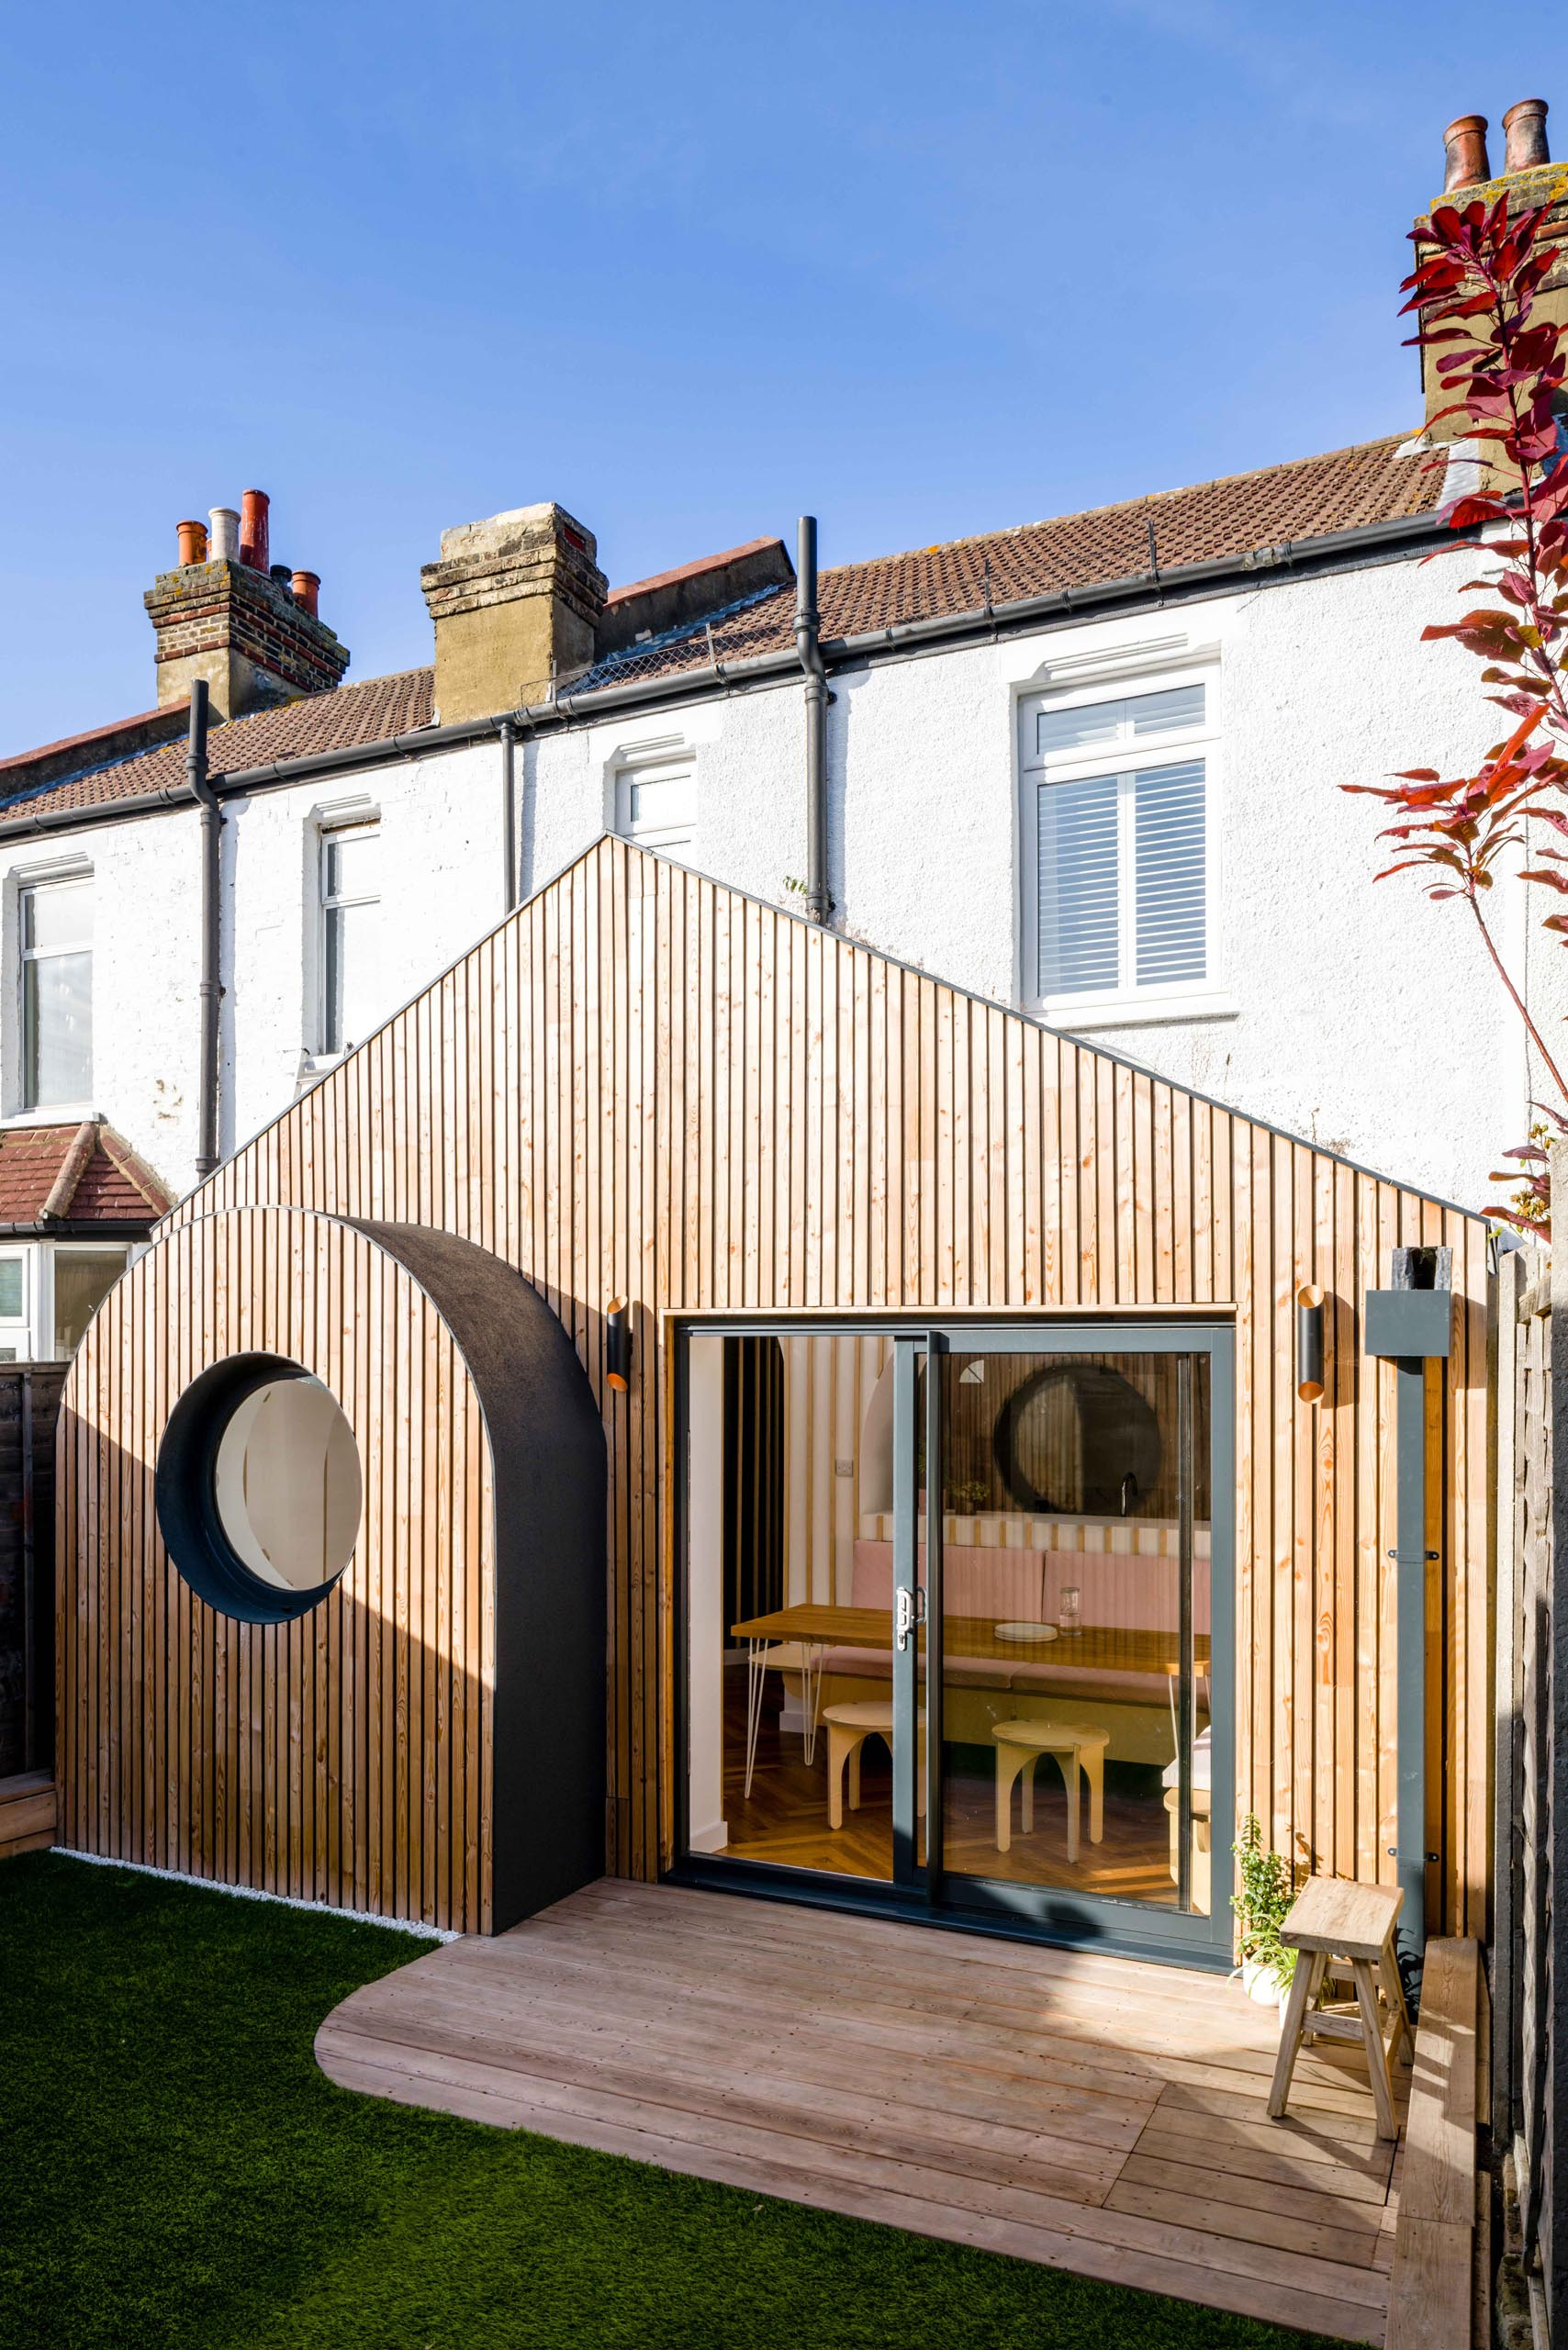 This modern house addition features tongue-and-groove larch cladding.